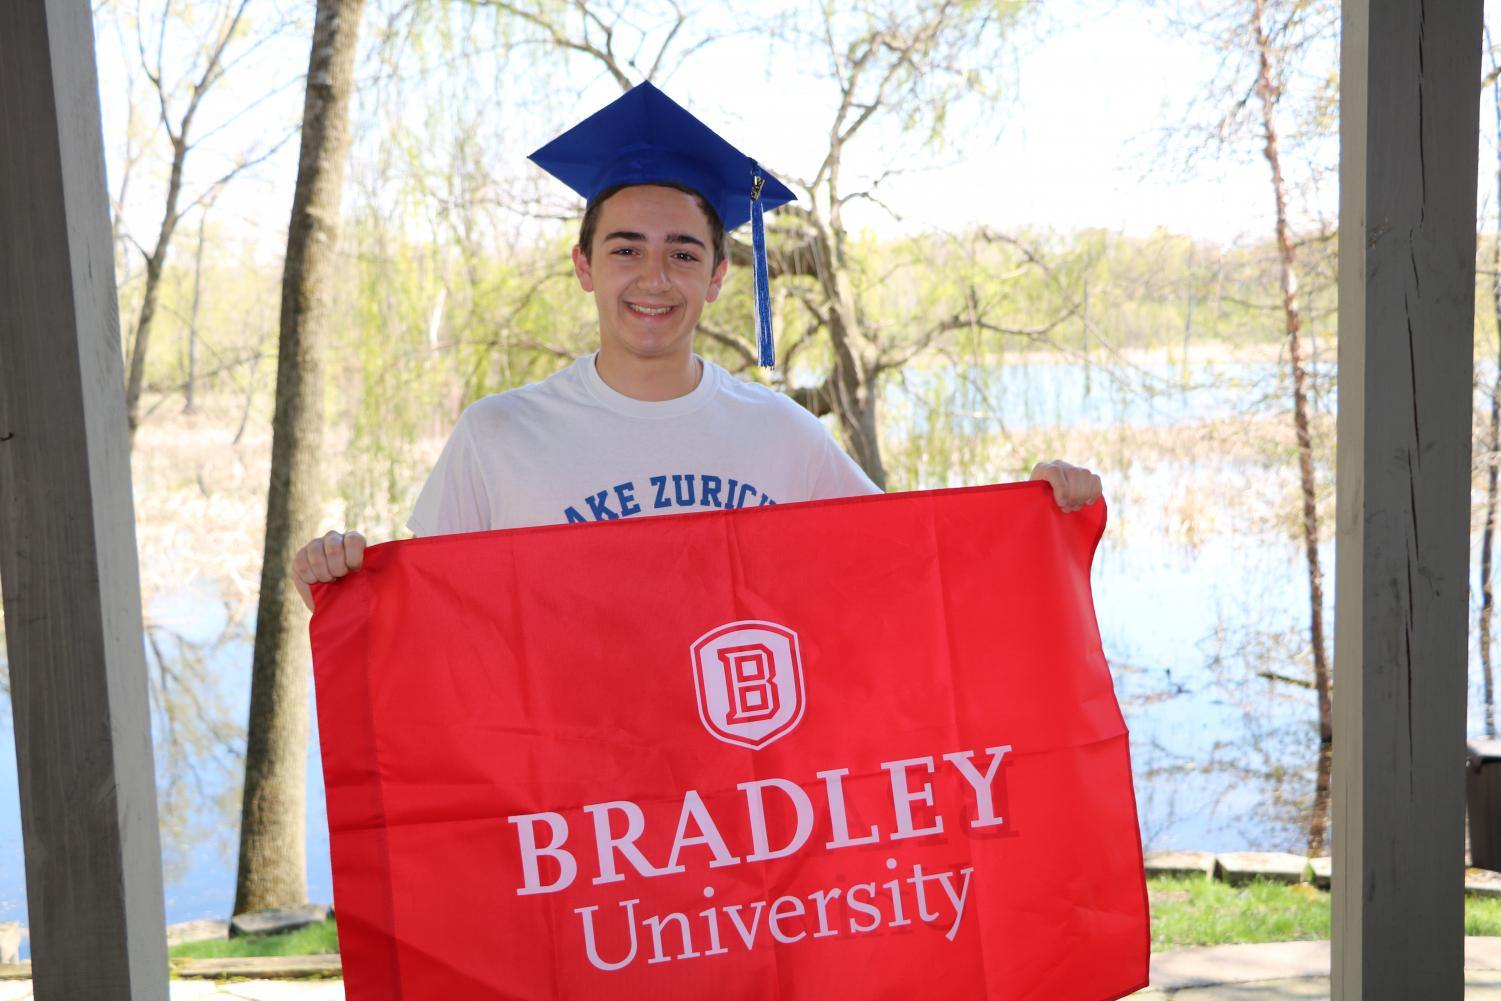 Landon Finn is excited to go to Bradley University because